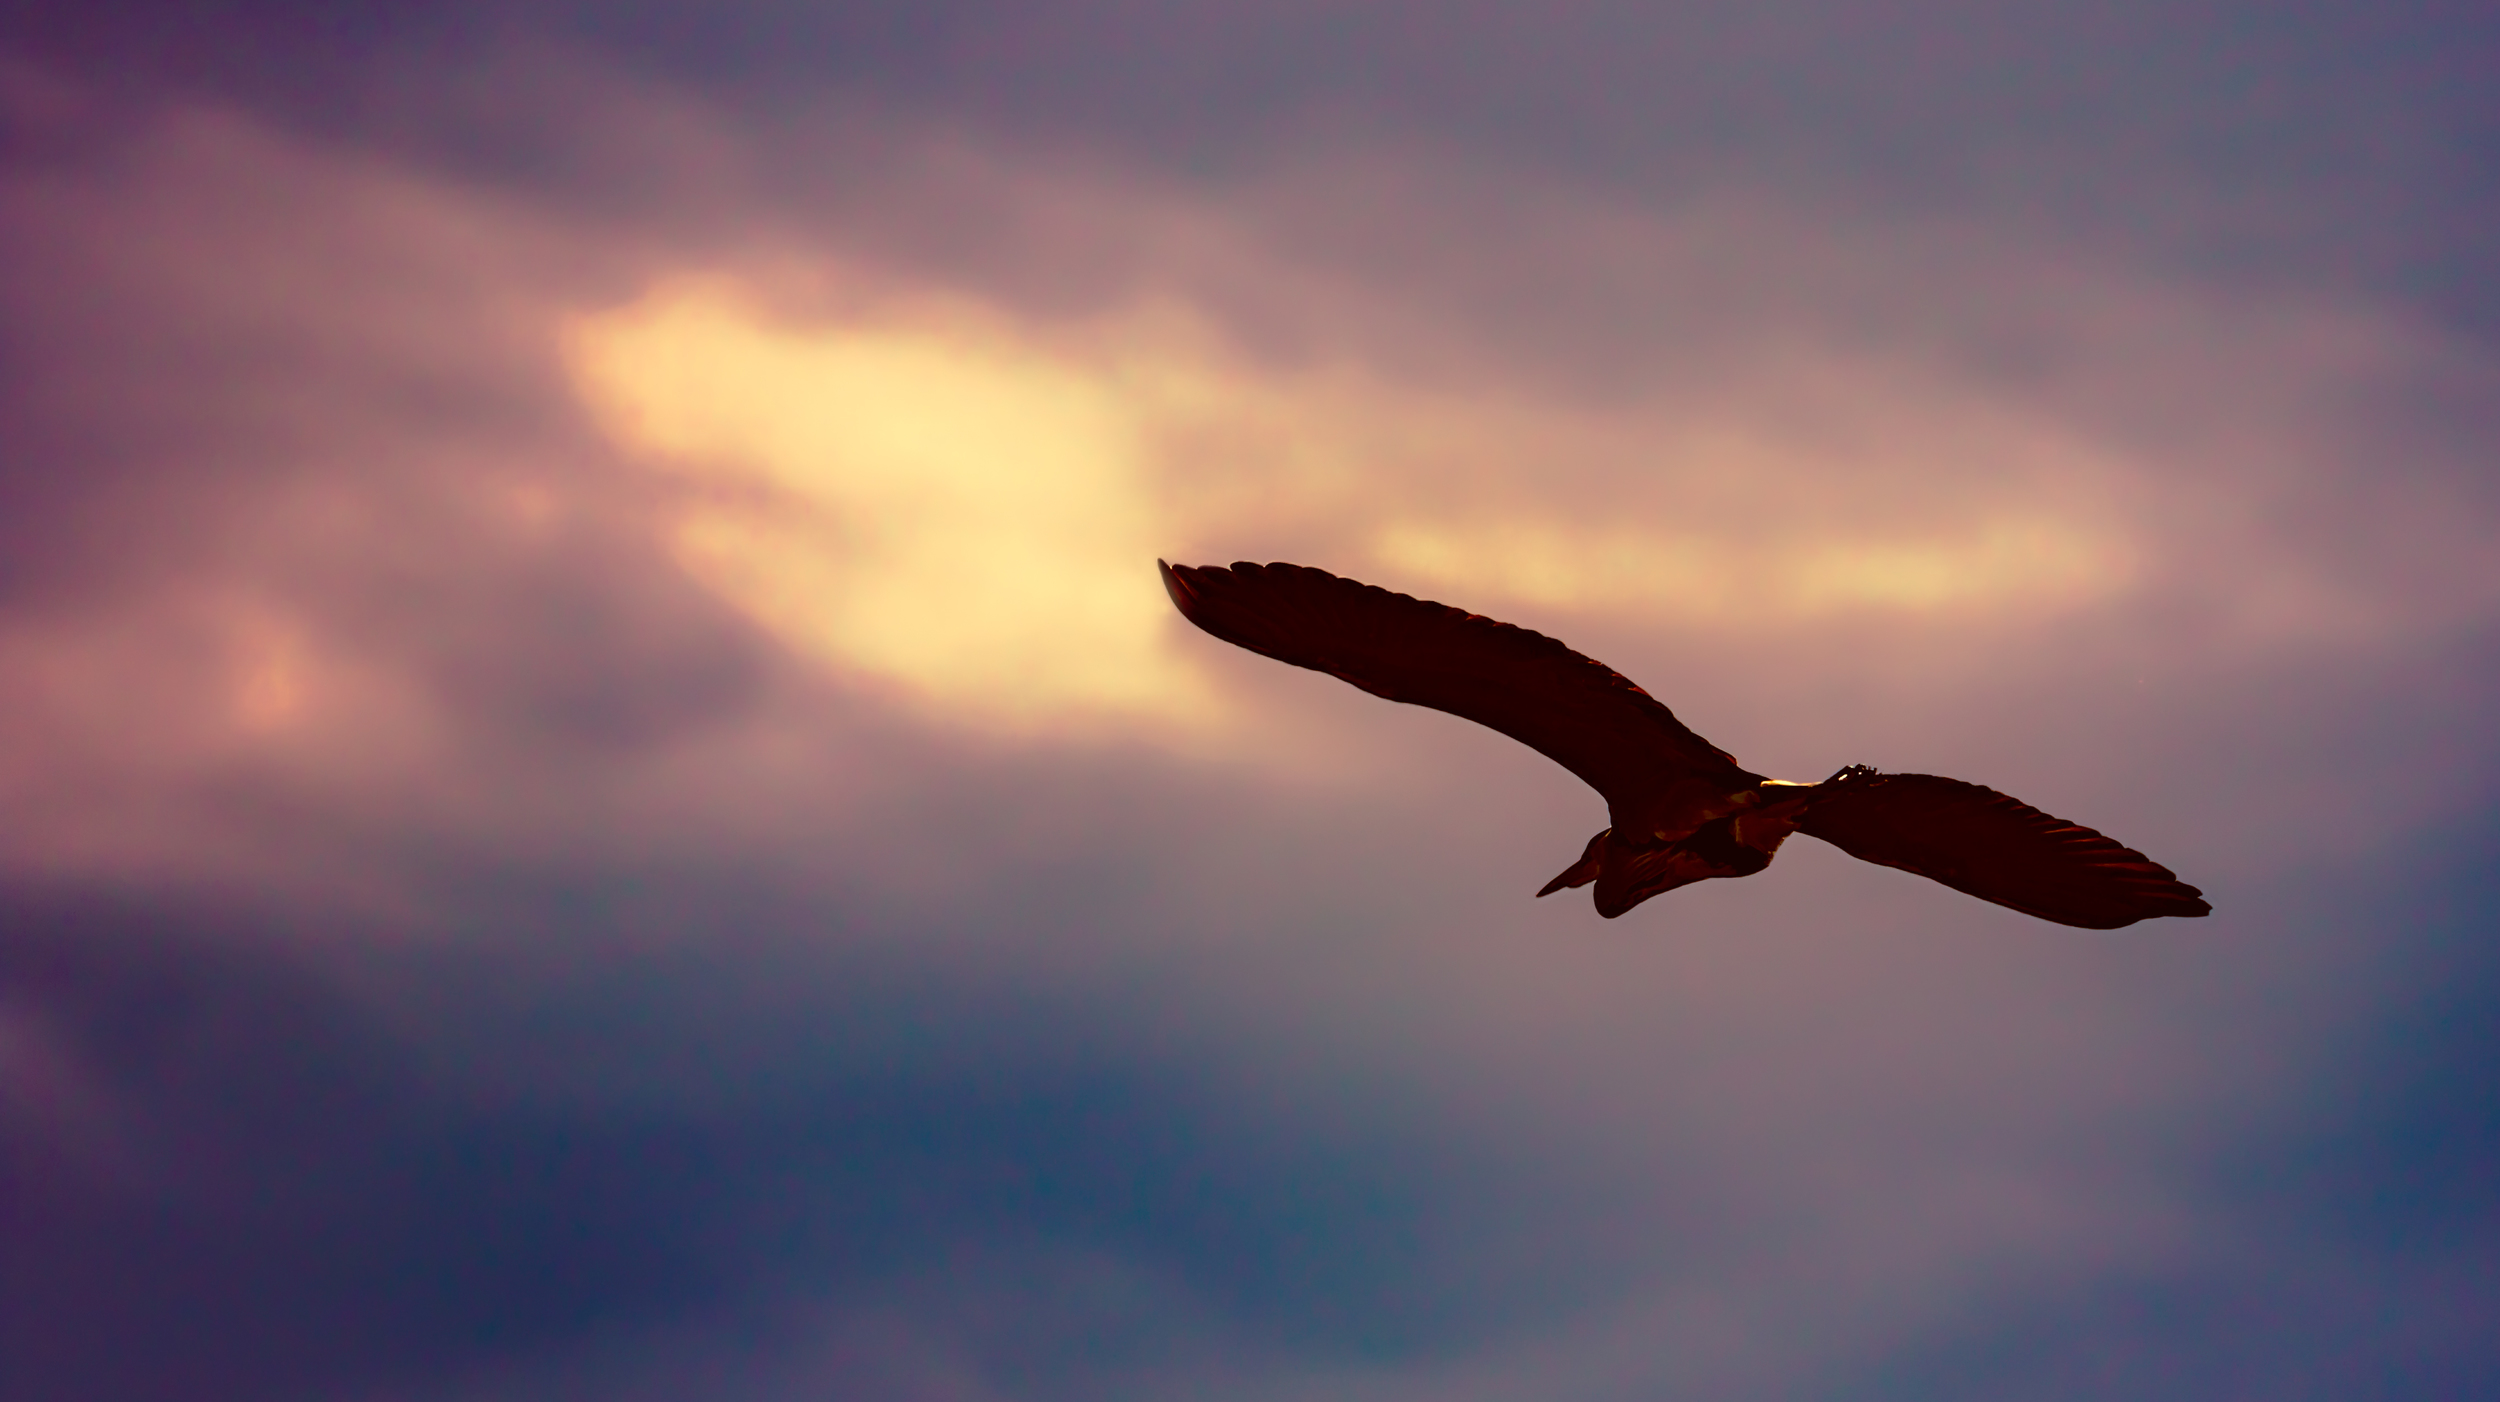 Heron flying towards the sunset